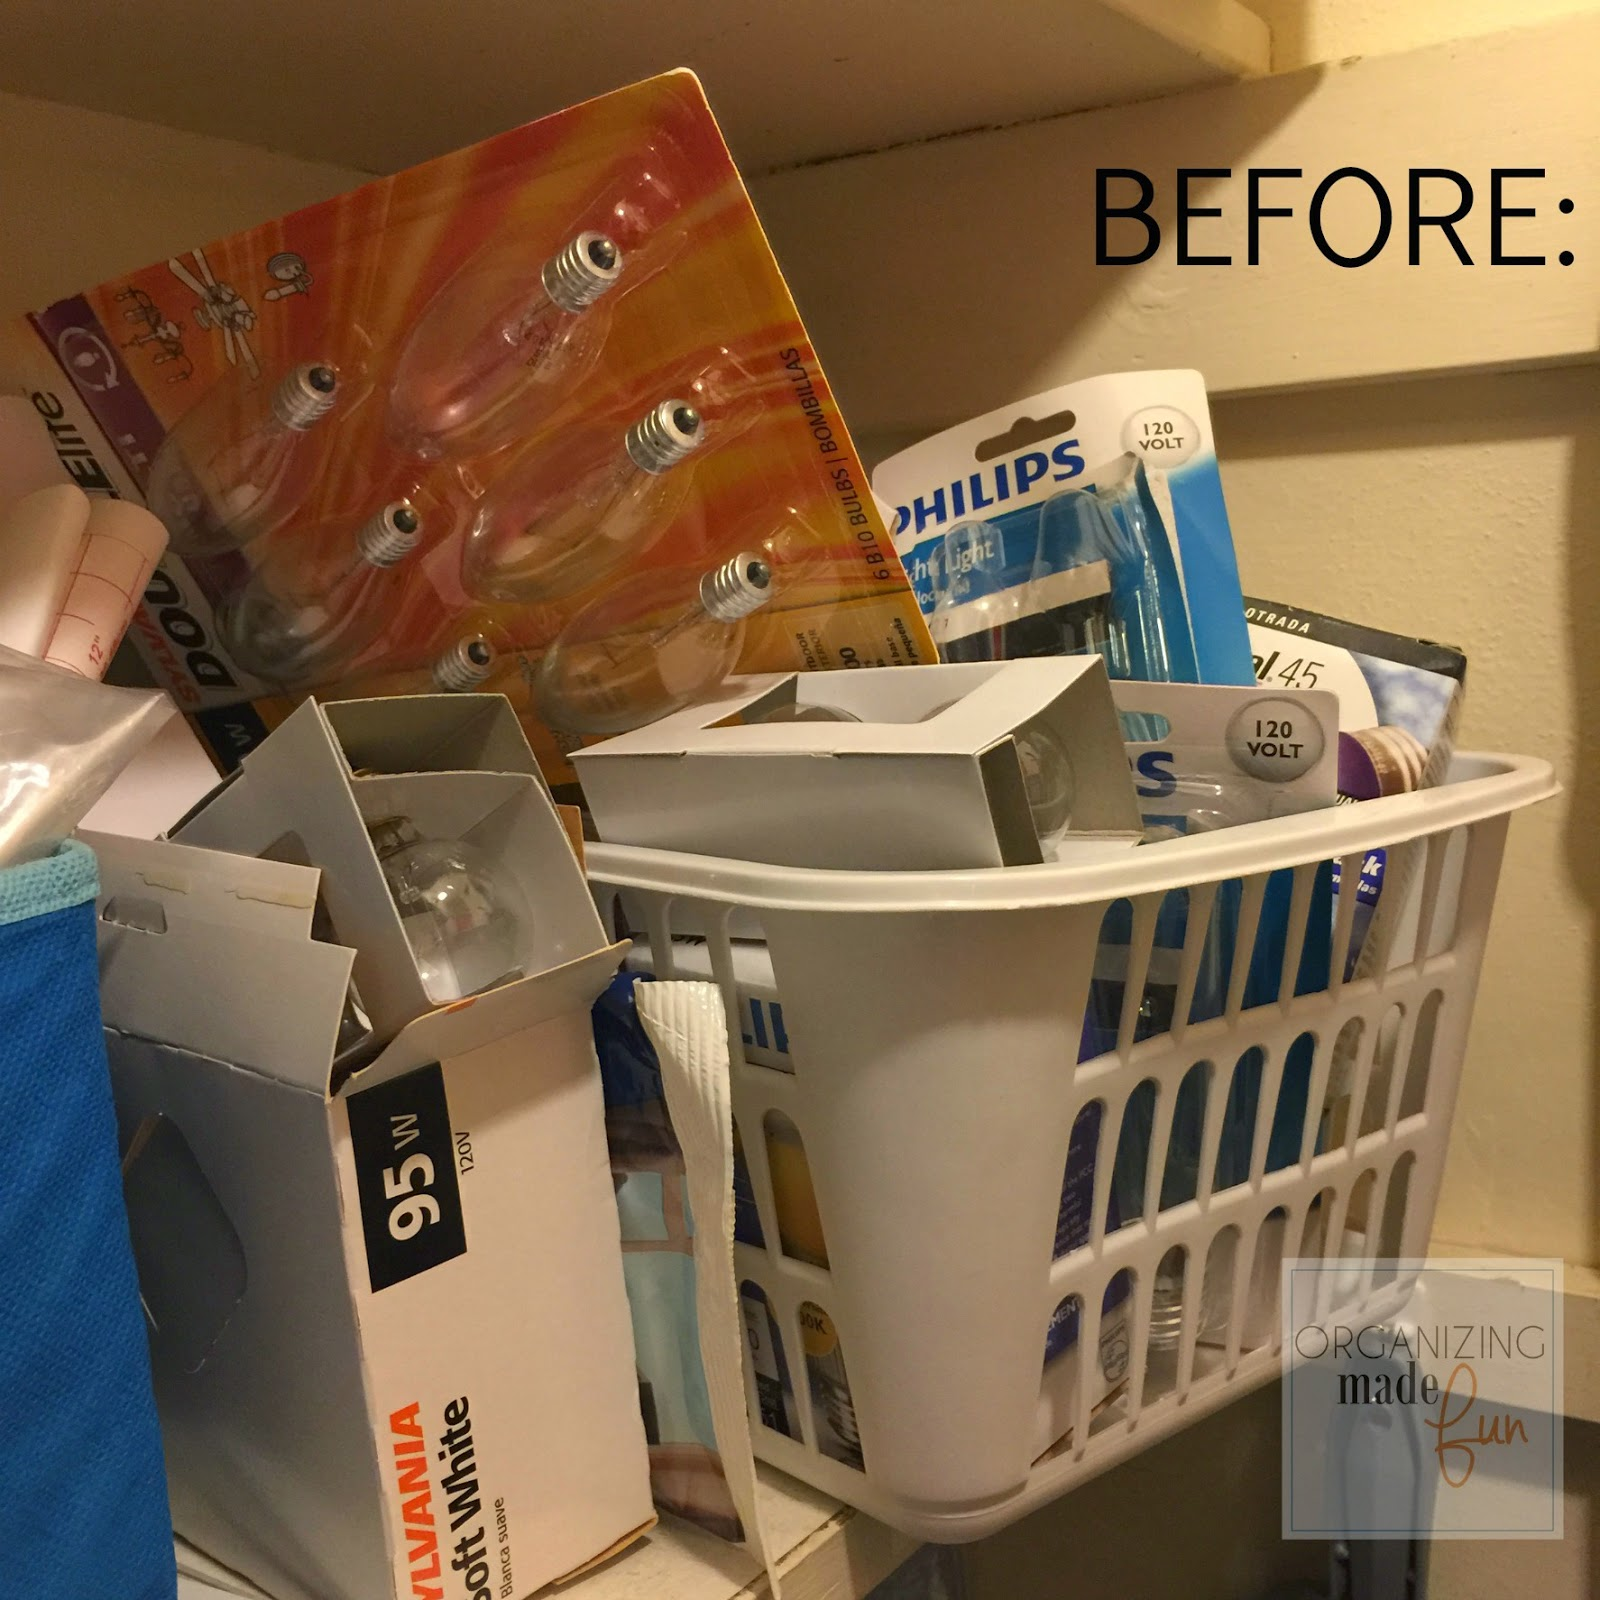 Perfectly Organized What Organizing Made Fun: How Do You Organize Light Bulbs?